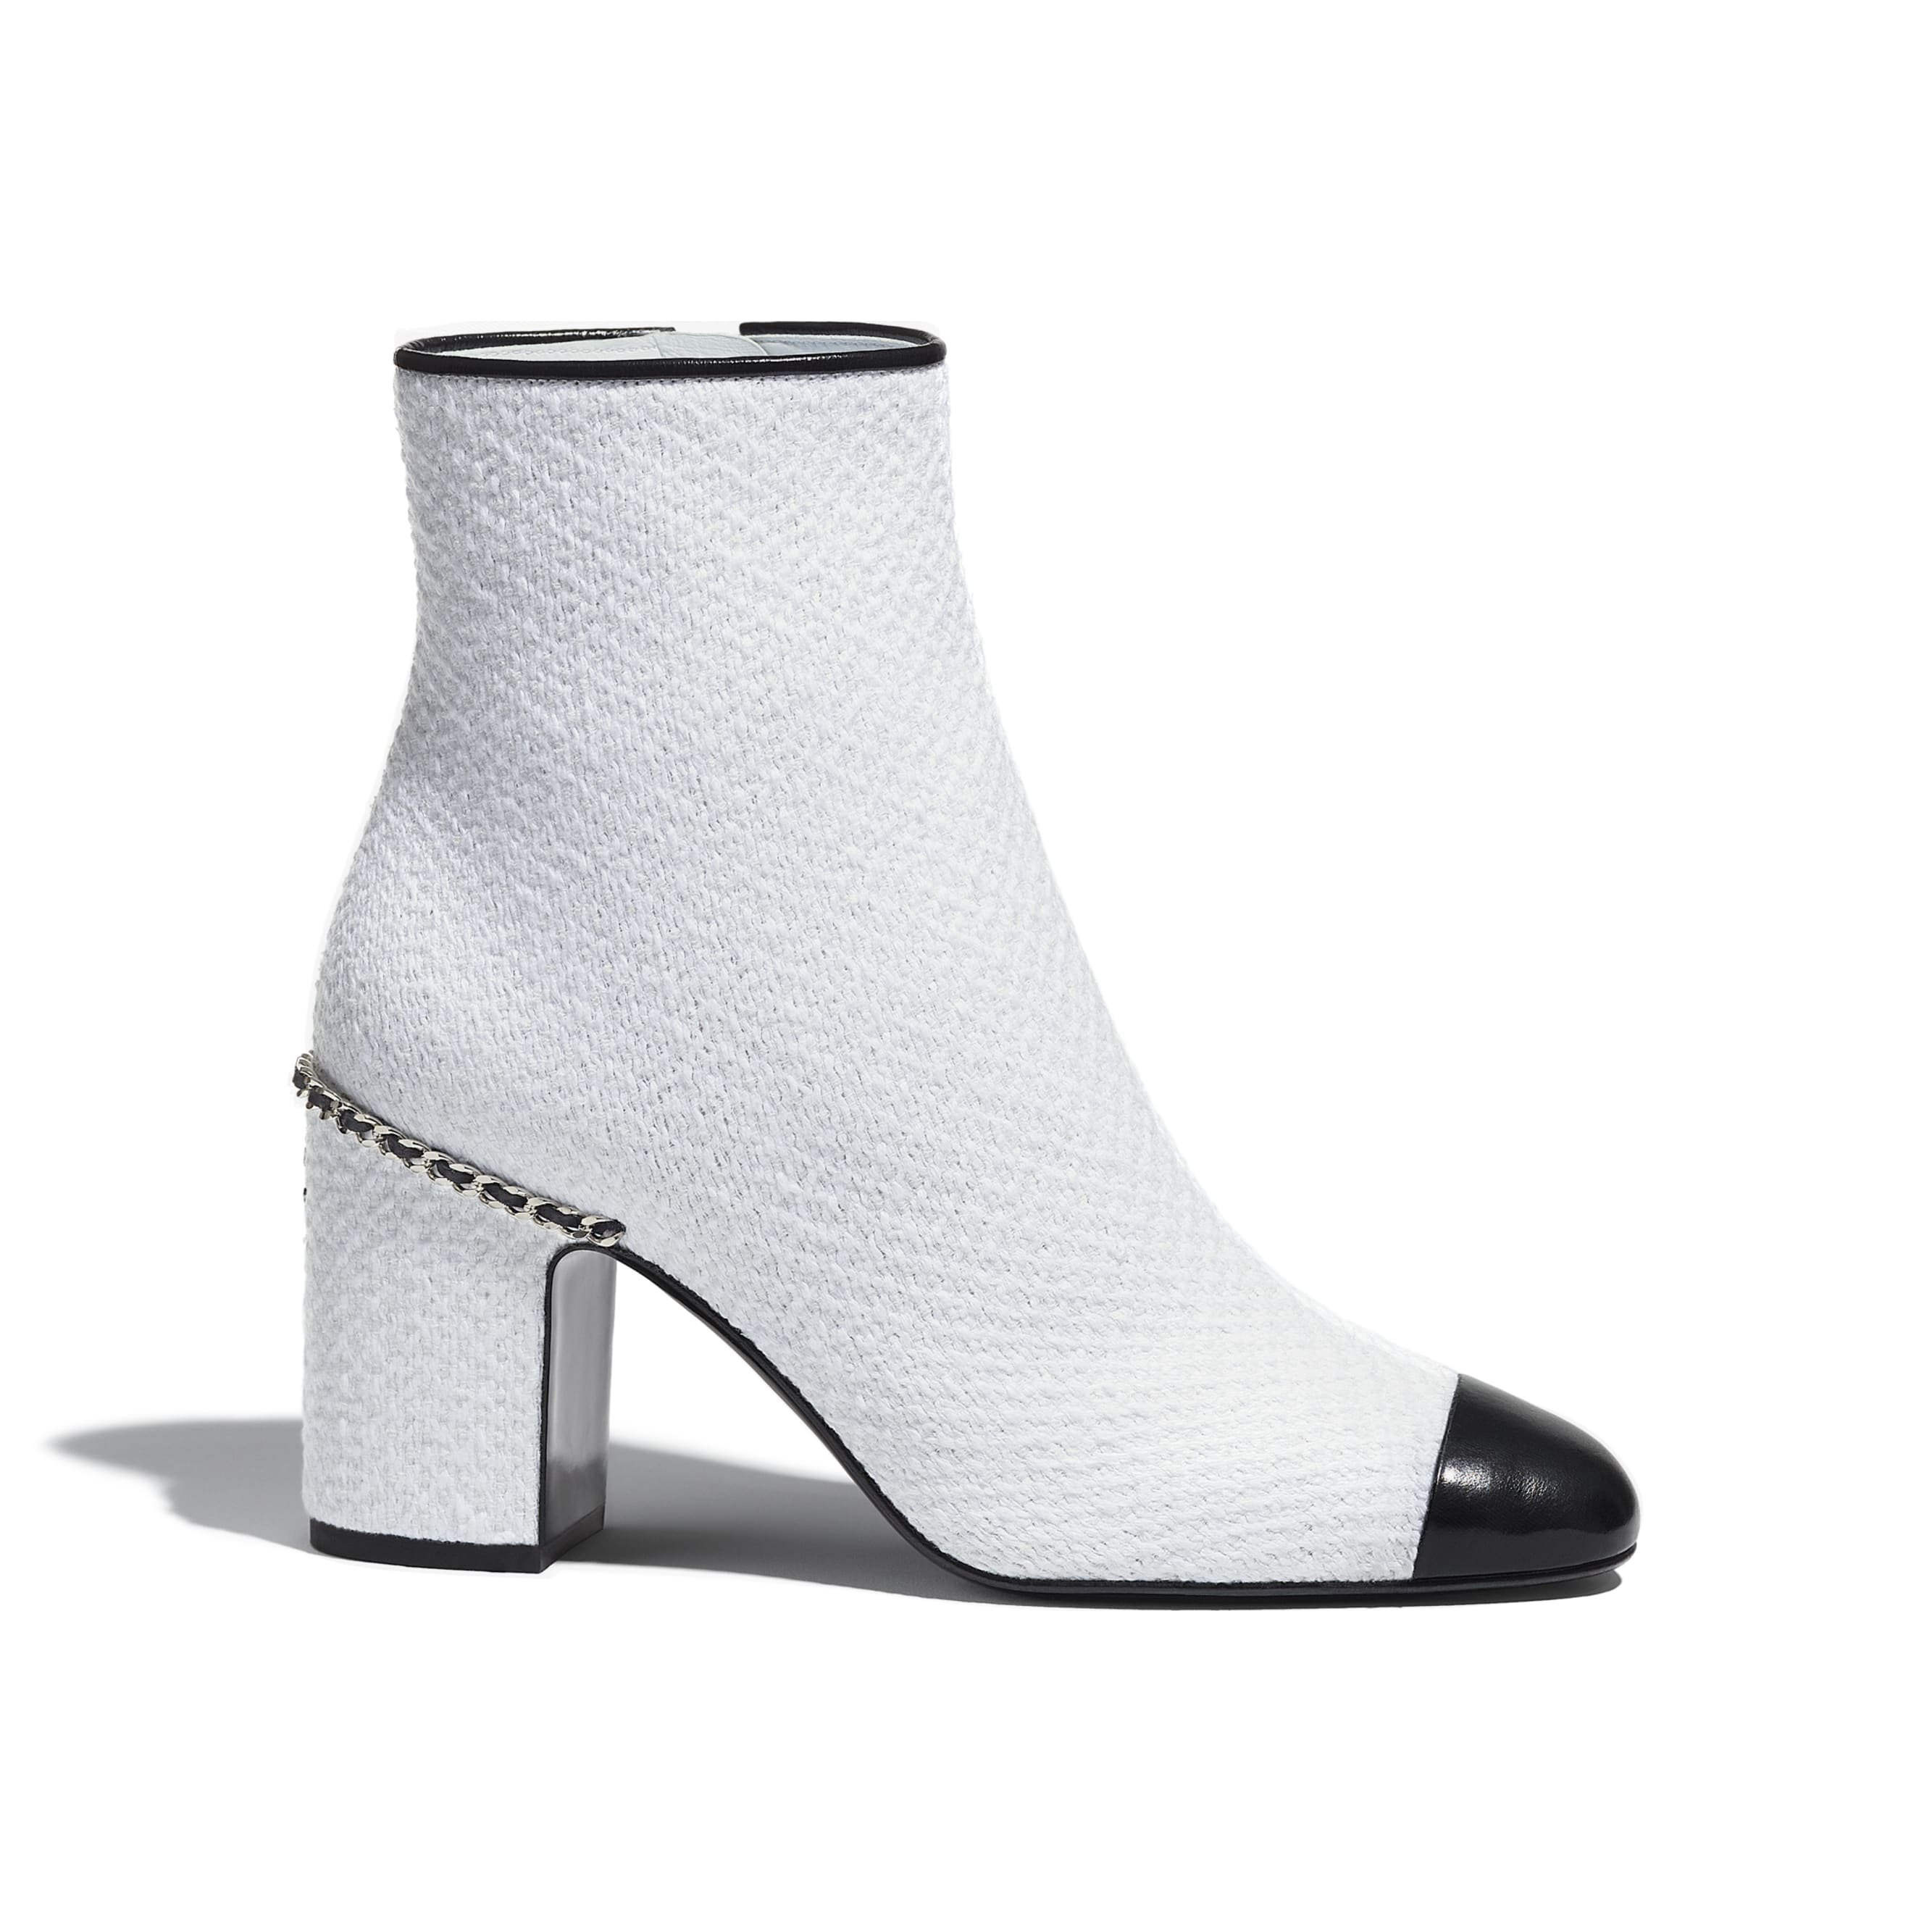 Ankle Boots - Ivory & Black - Tweed & Shiny Calfskin - CHANEL - Default view - see standard sized version